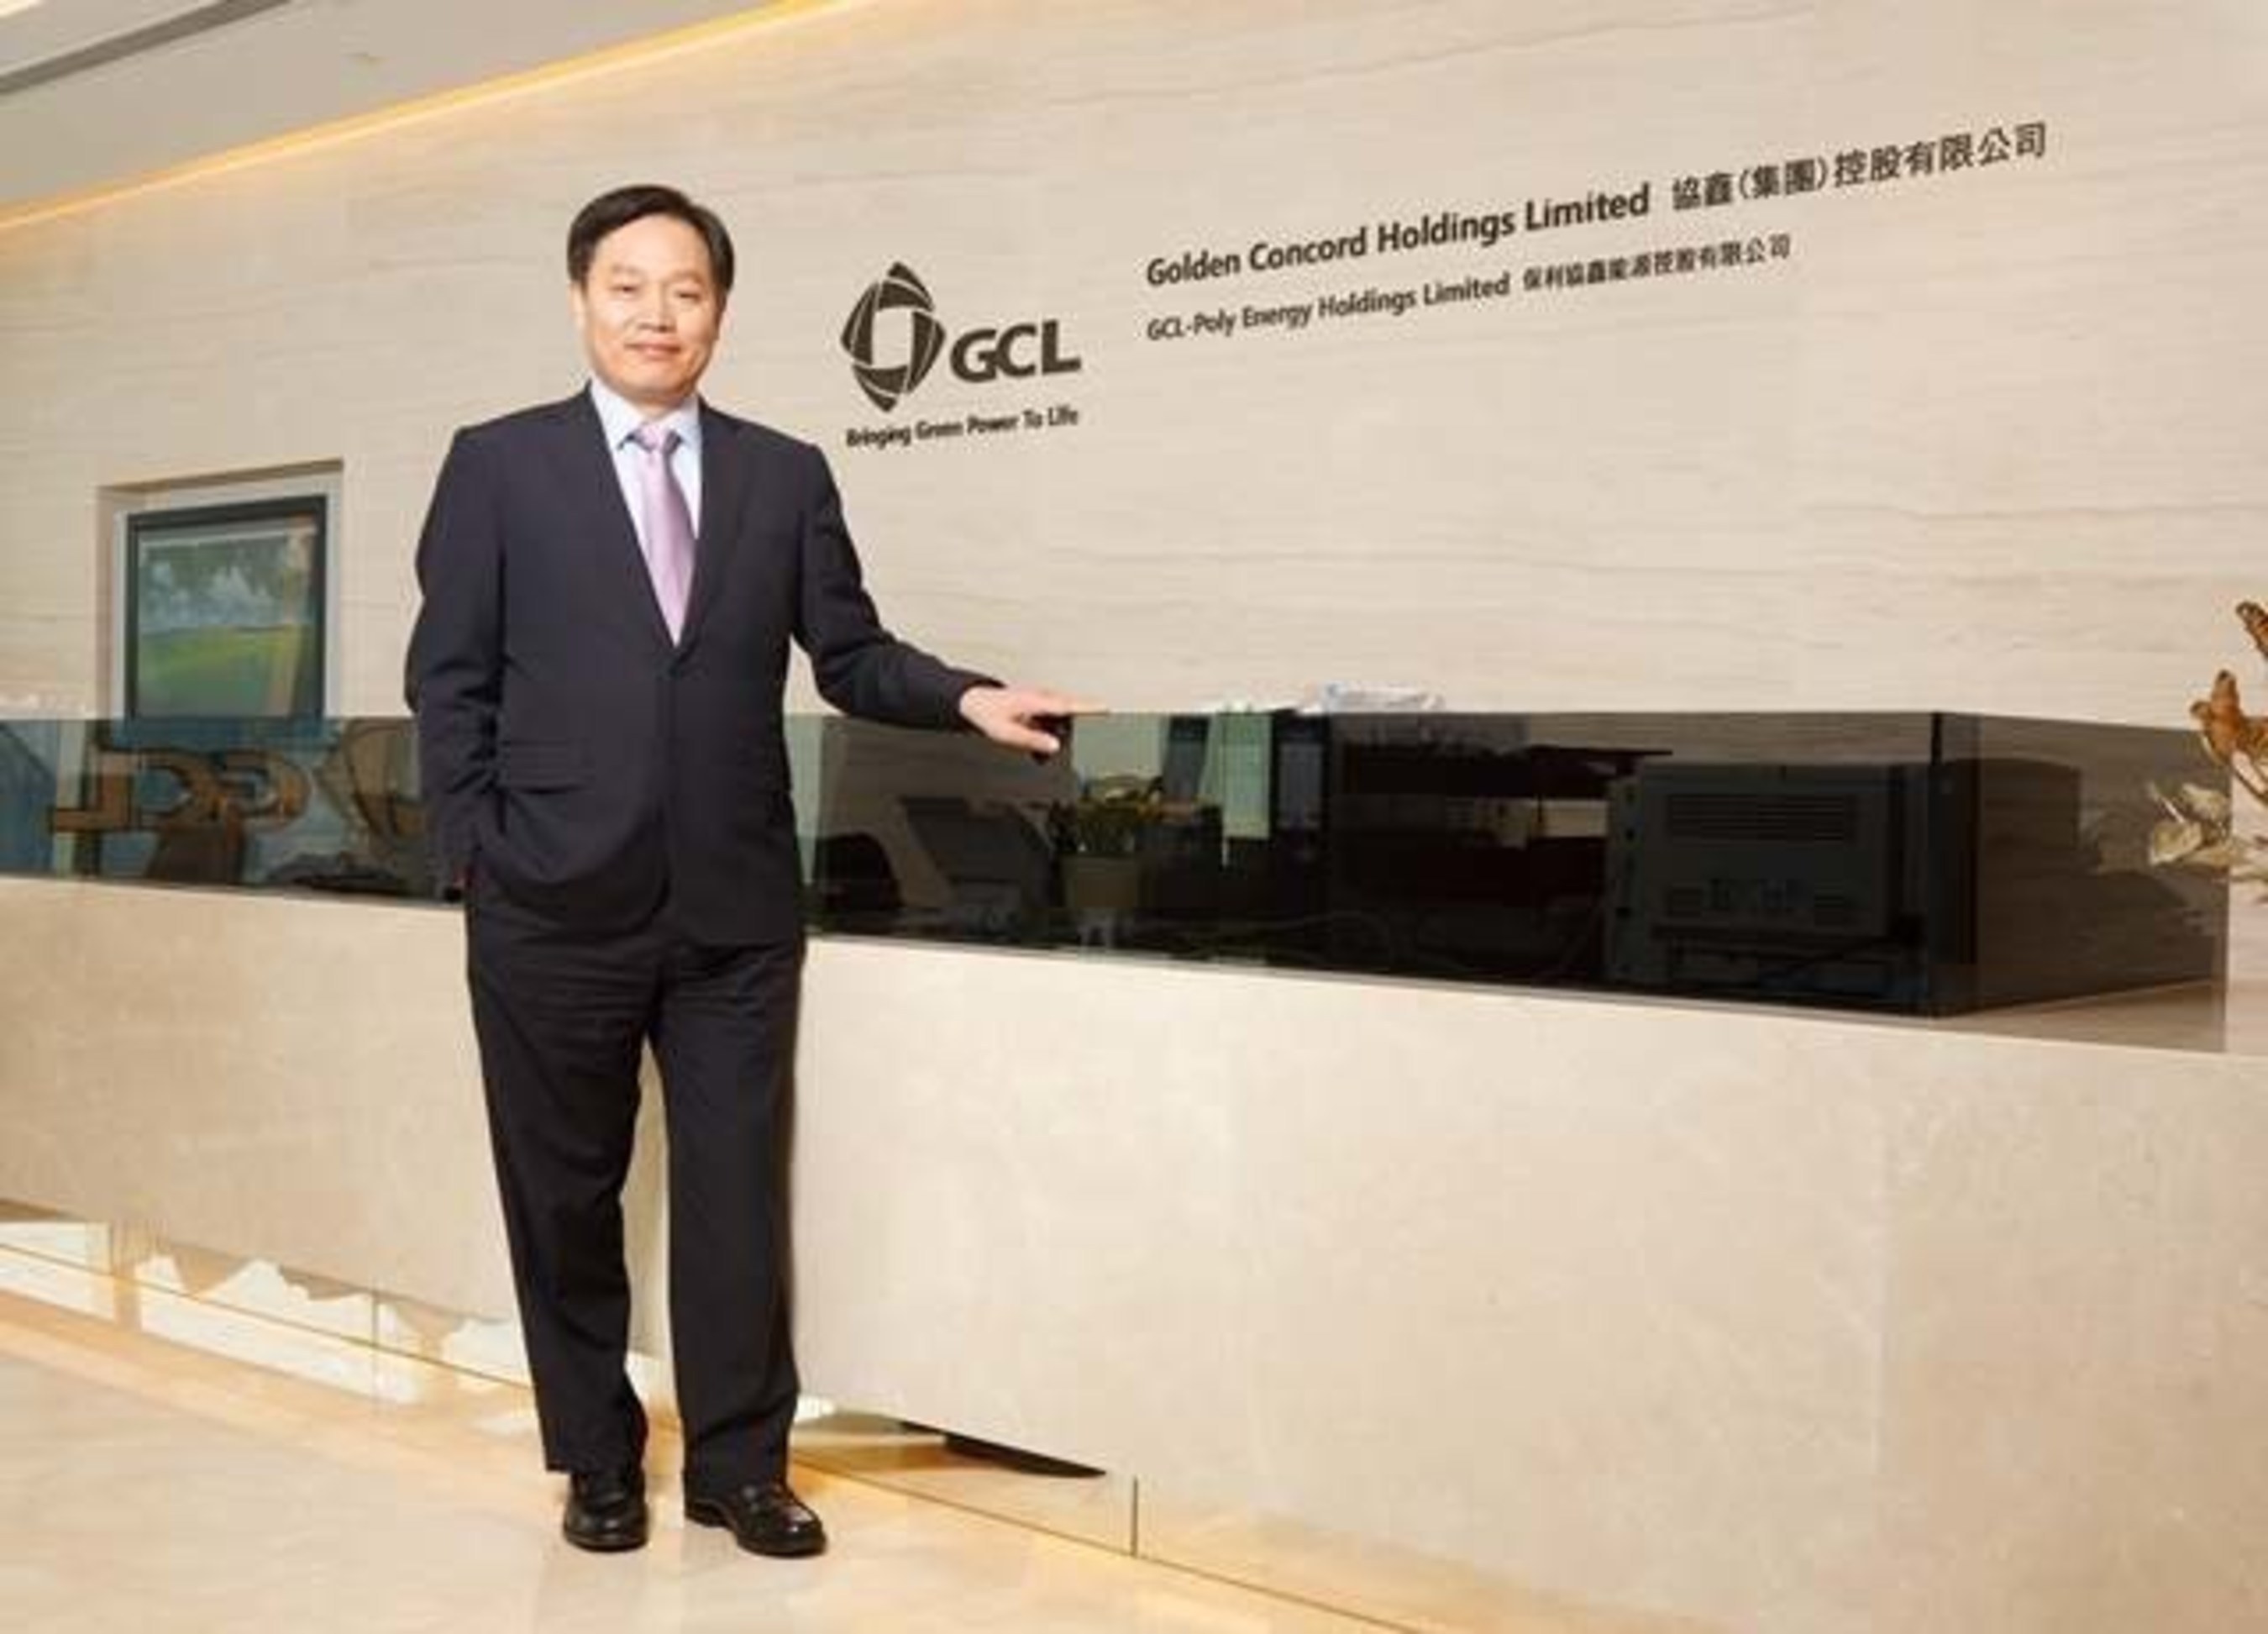 Mr. Zhu Gongshan, the Chairman of GCL group